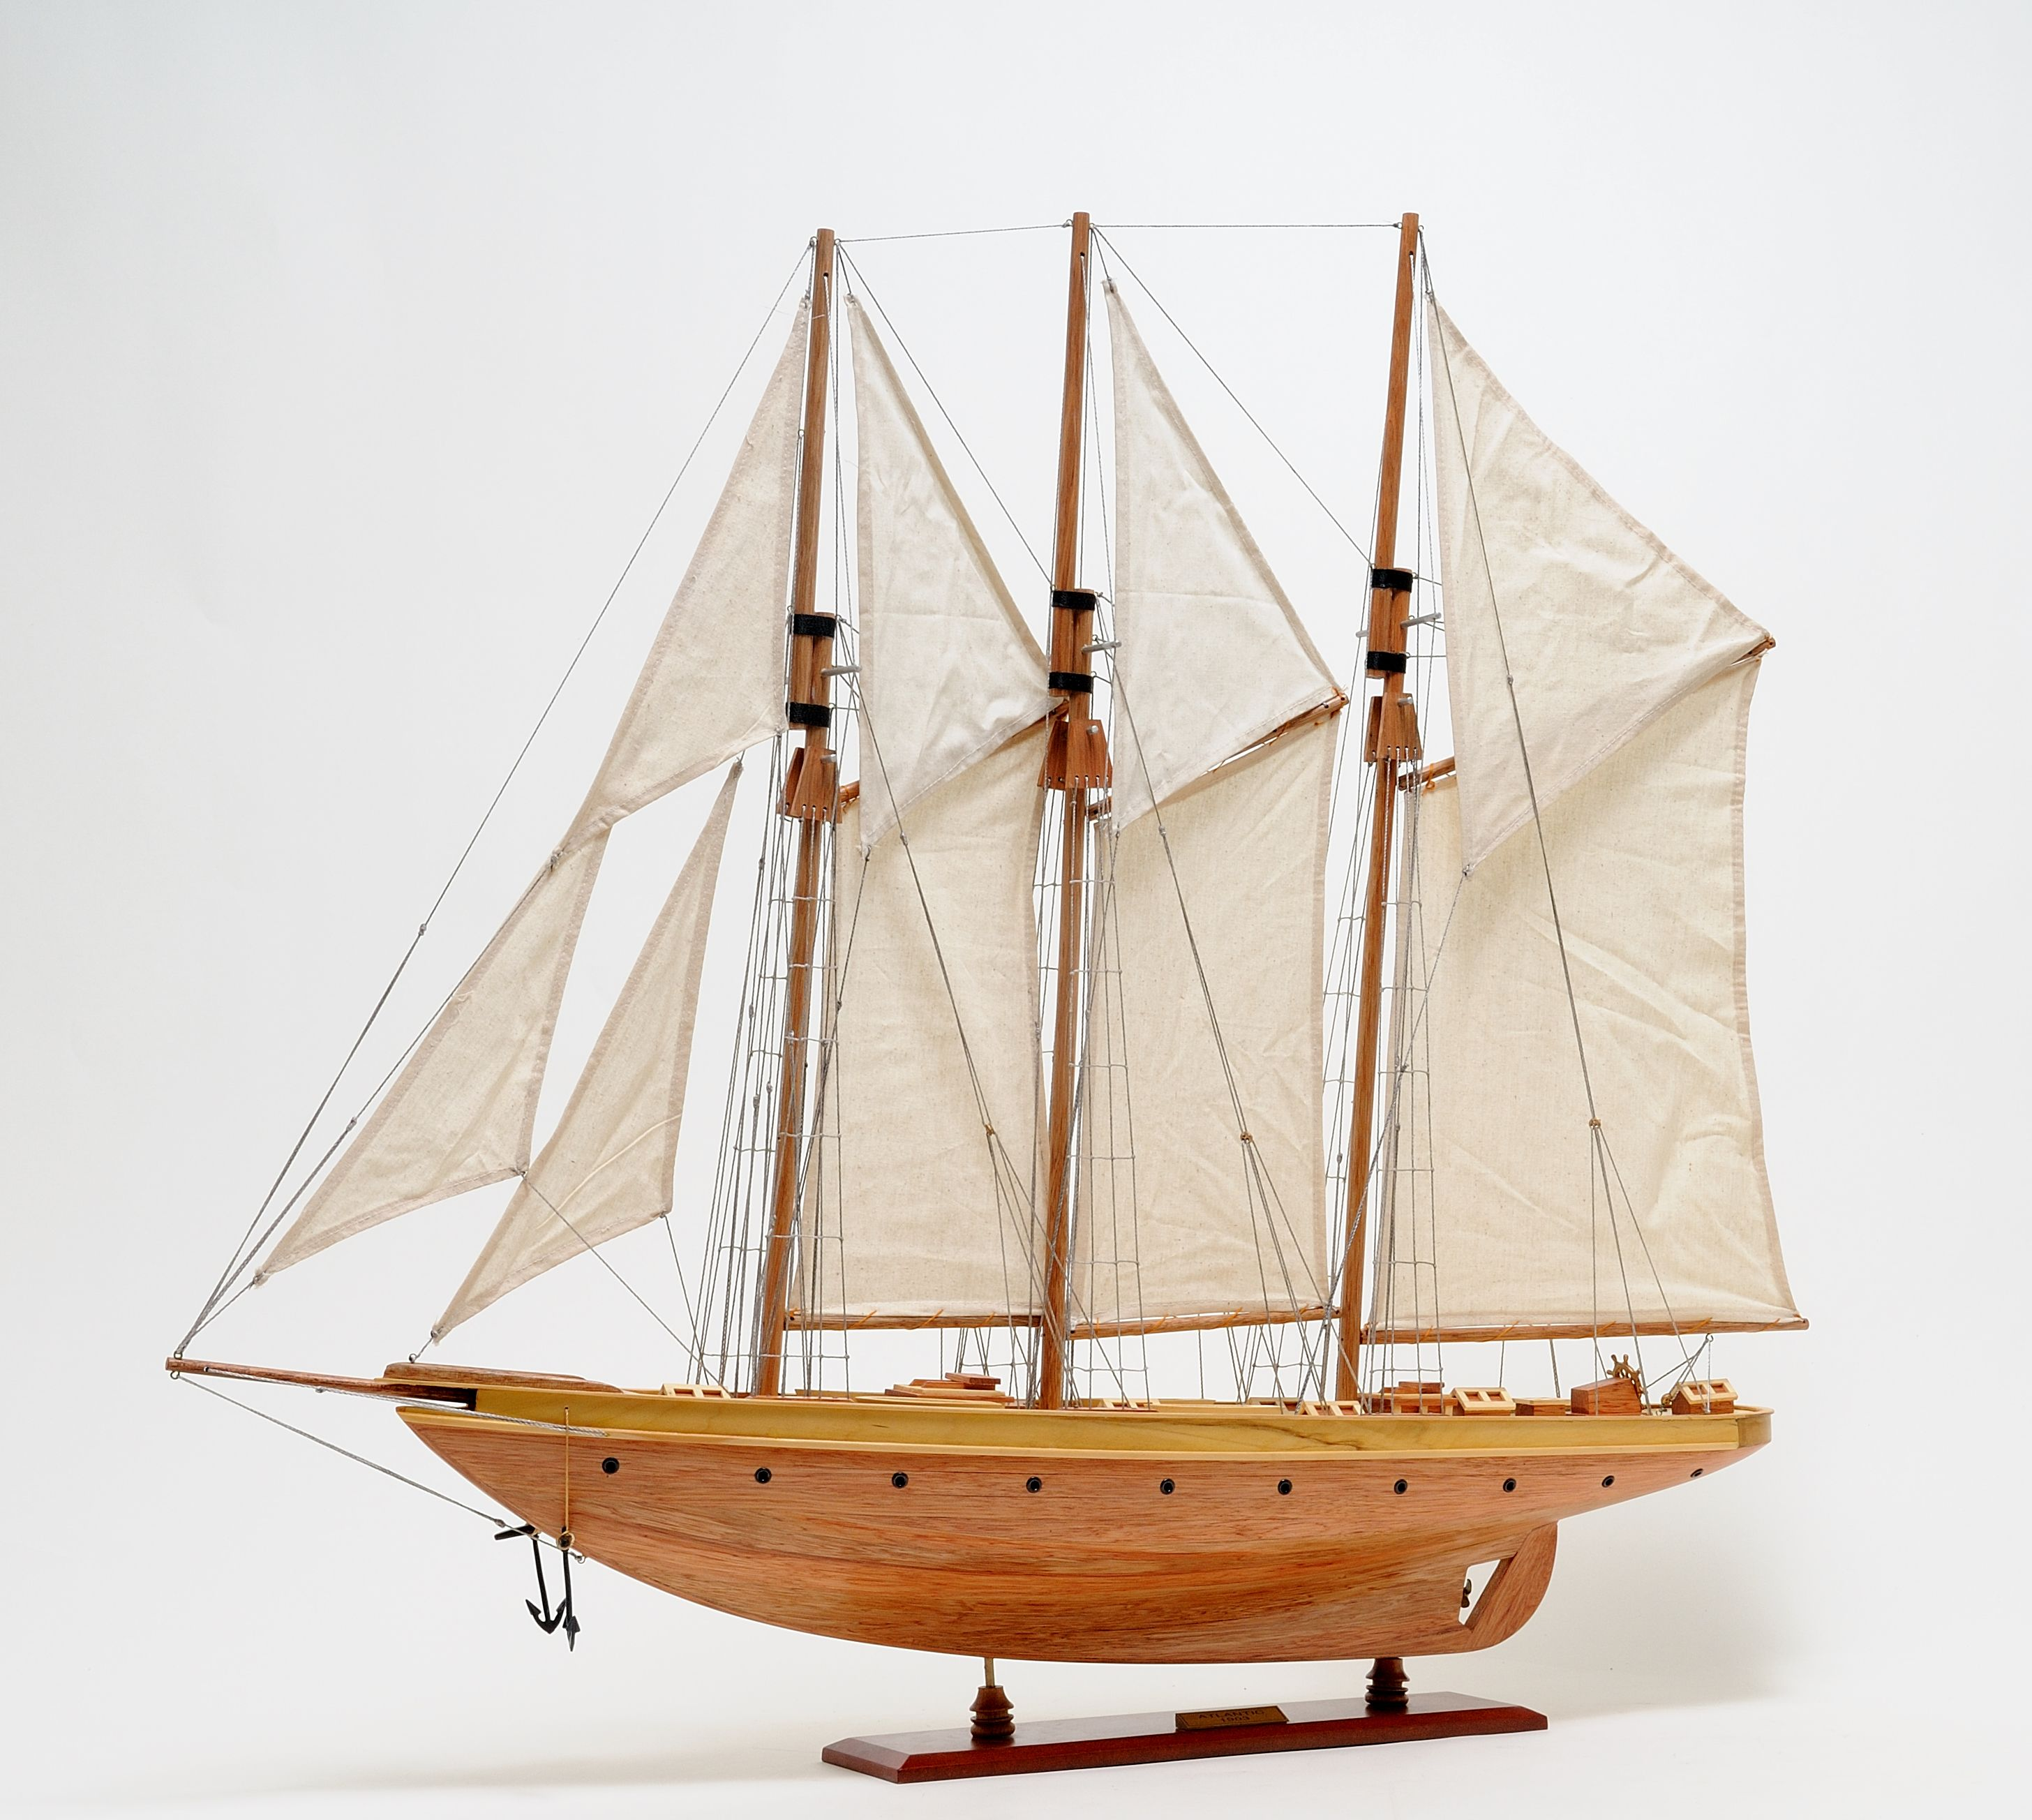 2278-13028-Atlantic-Model-Yacht